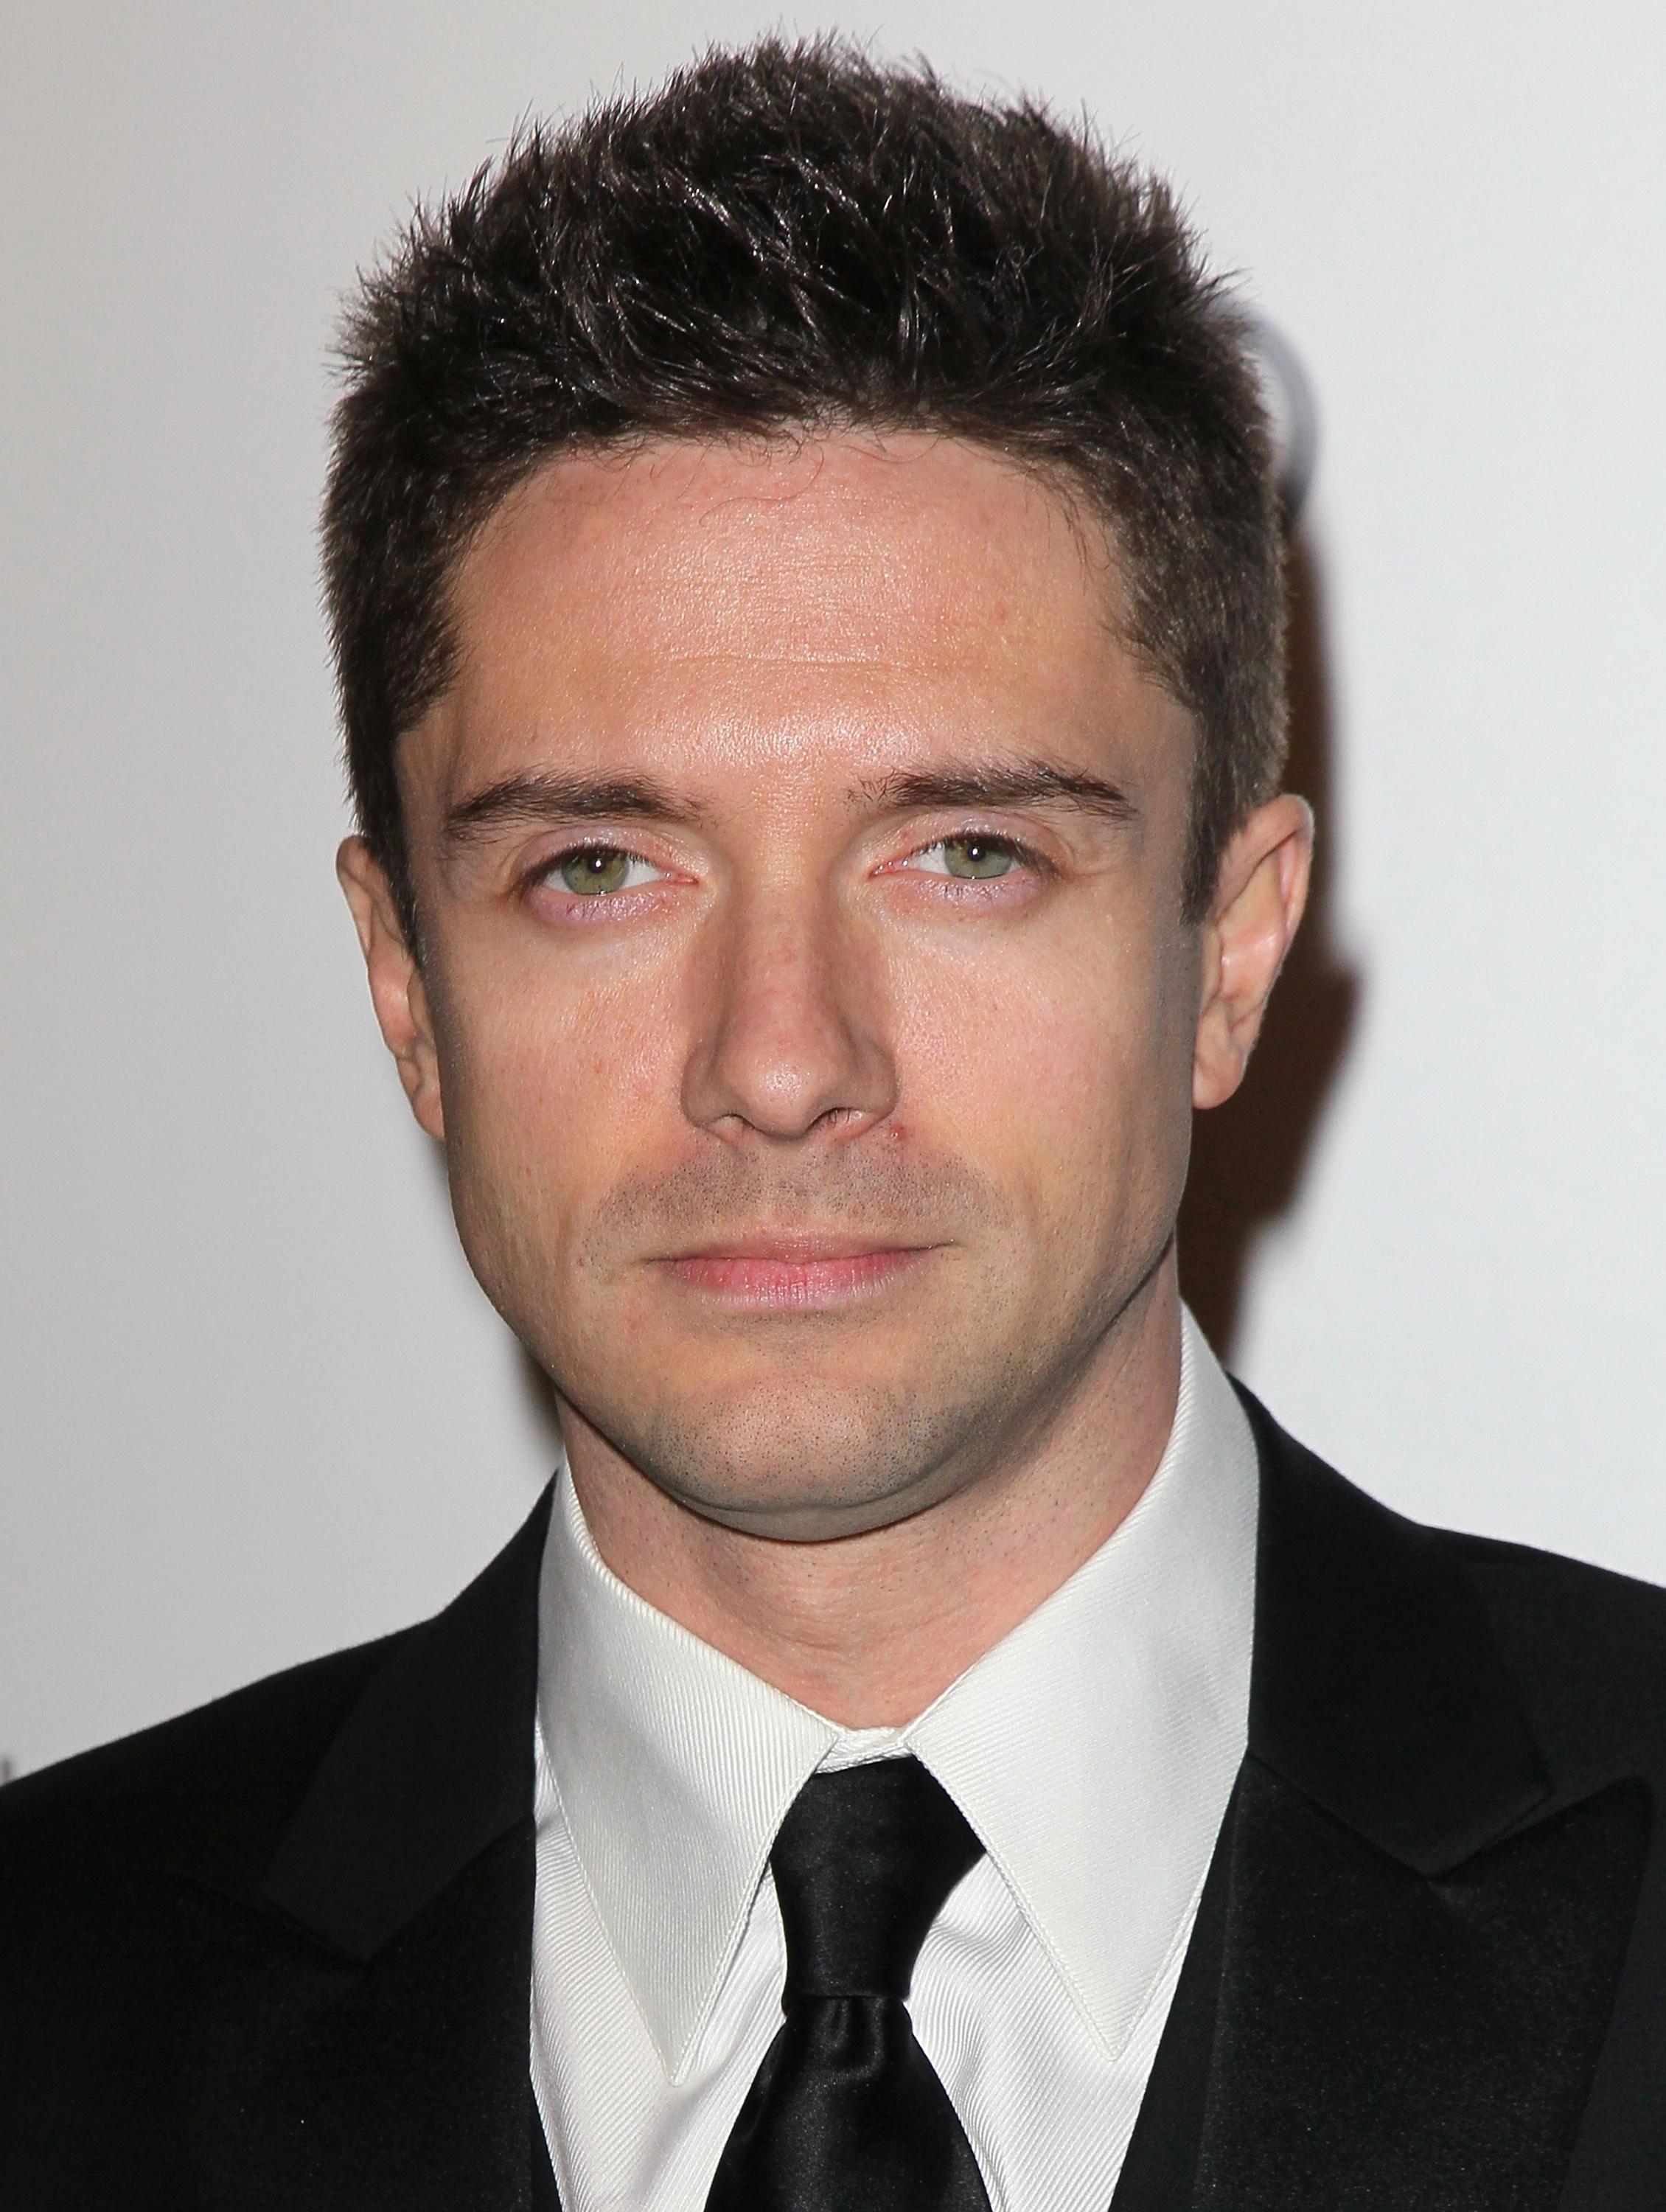 topher grace giftopher grace instagram, topher grace star wars, topher grace and ivanka trump, topher grace 2016, topher grace gif, topher grace star wars edit, topher grace real height, topher grace abs, topher grace wife, topher grace married, topher grace and laura prepon dating, topher grace mila kunis, topher grace height, topher grace terraria, topher grace spider man, topher grace tattoo, topher grace filmography, topher grace films, topher grace ashton kutcher